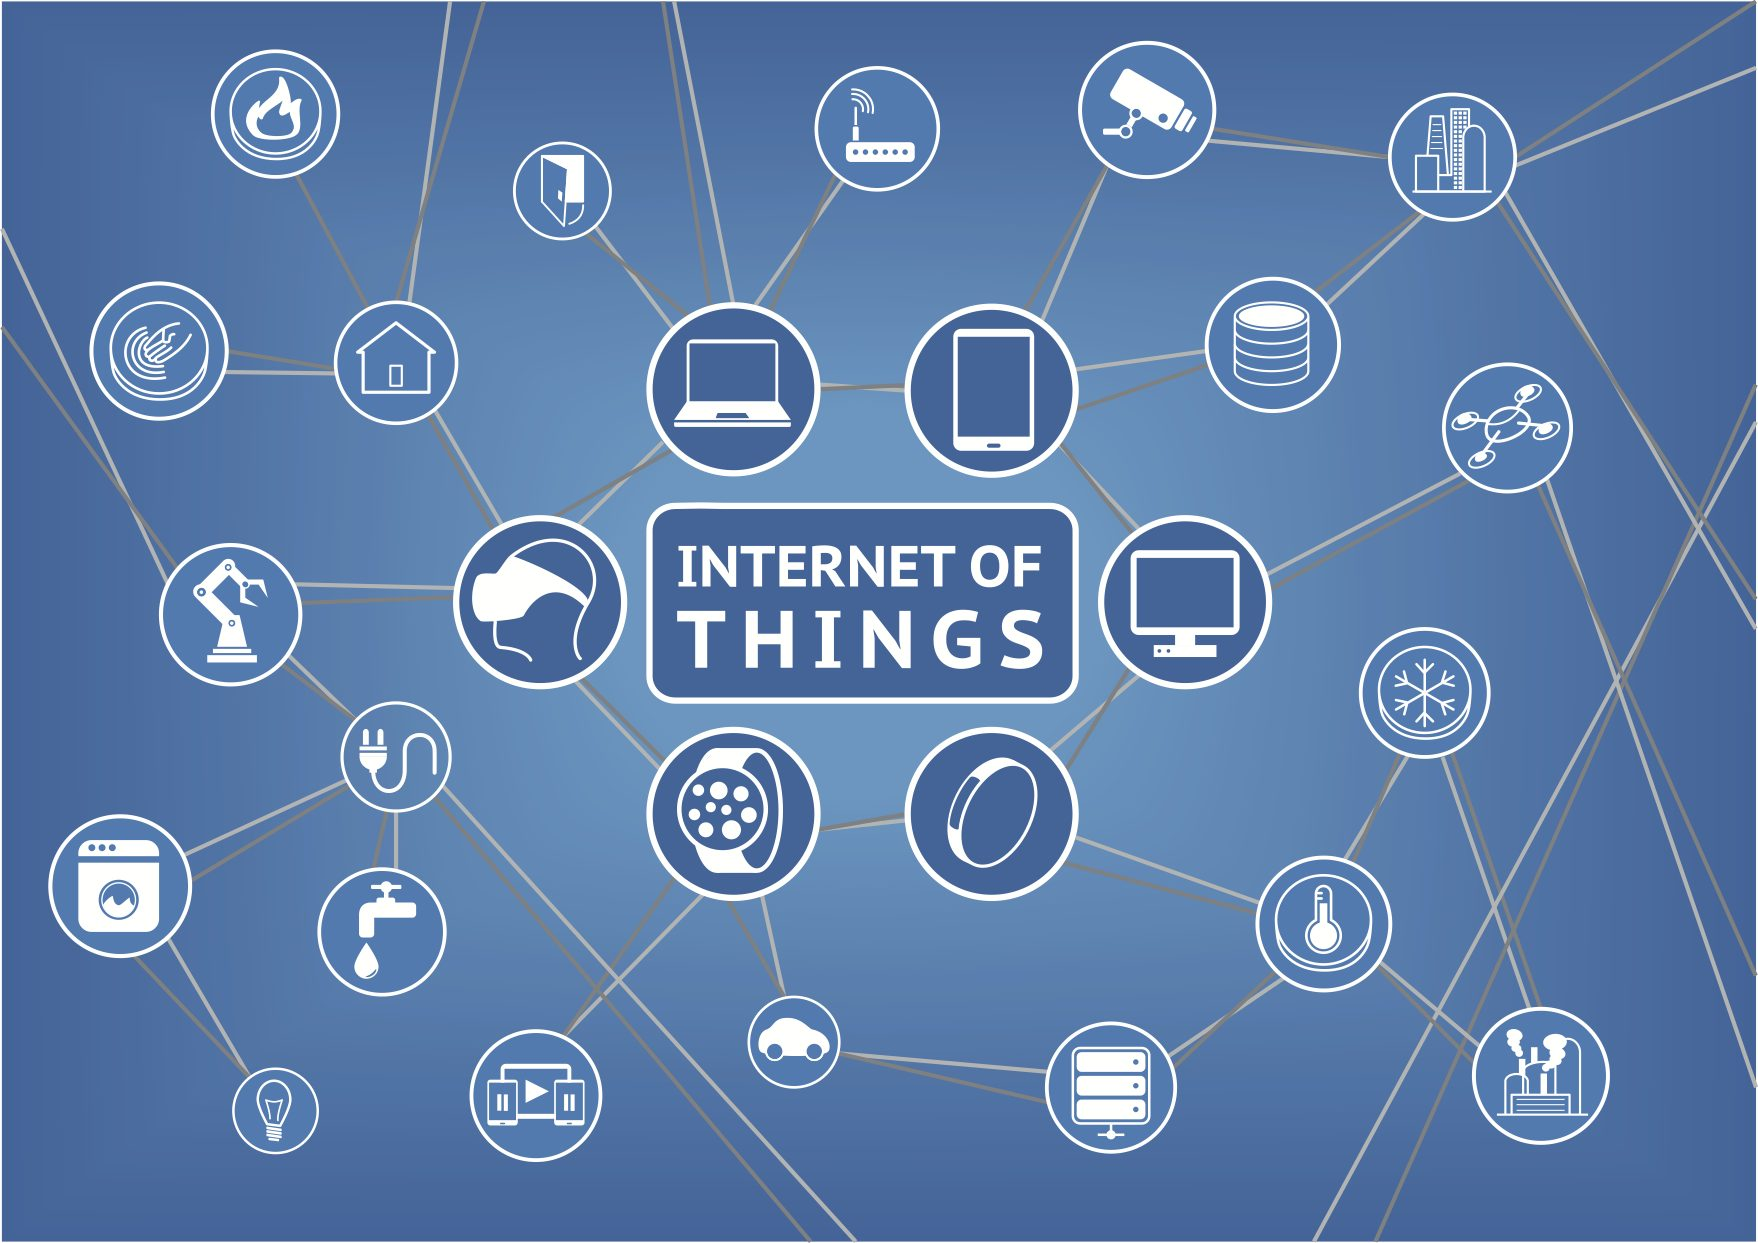 McKinsey] Ten trends shaping the Internet of Things business